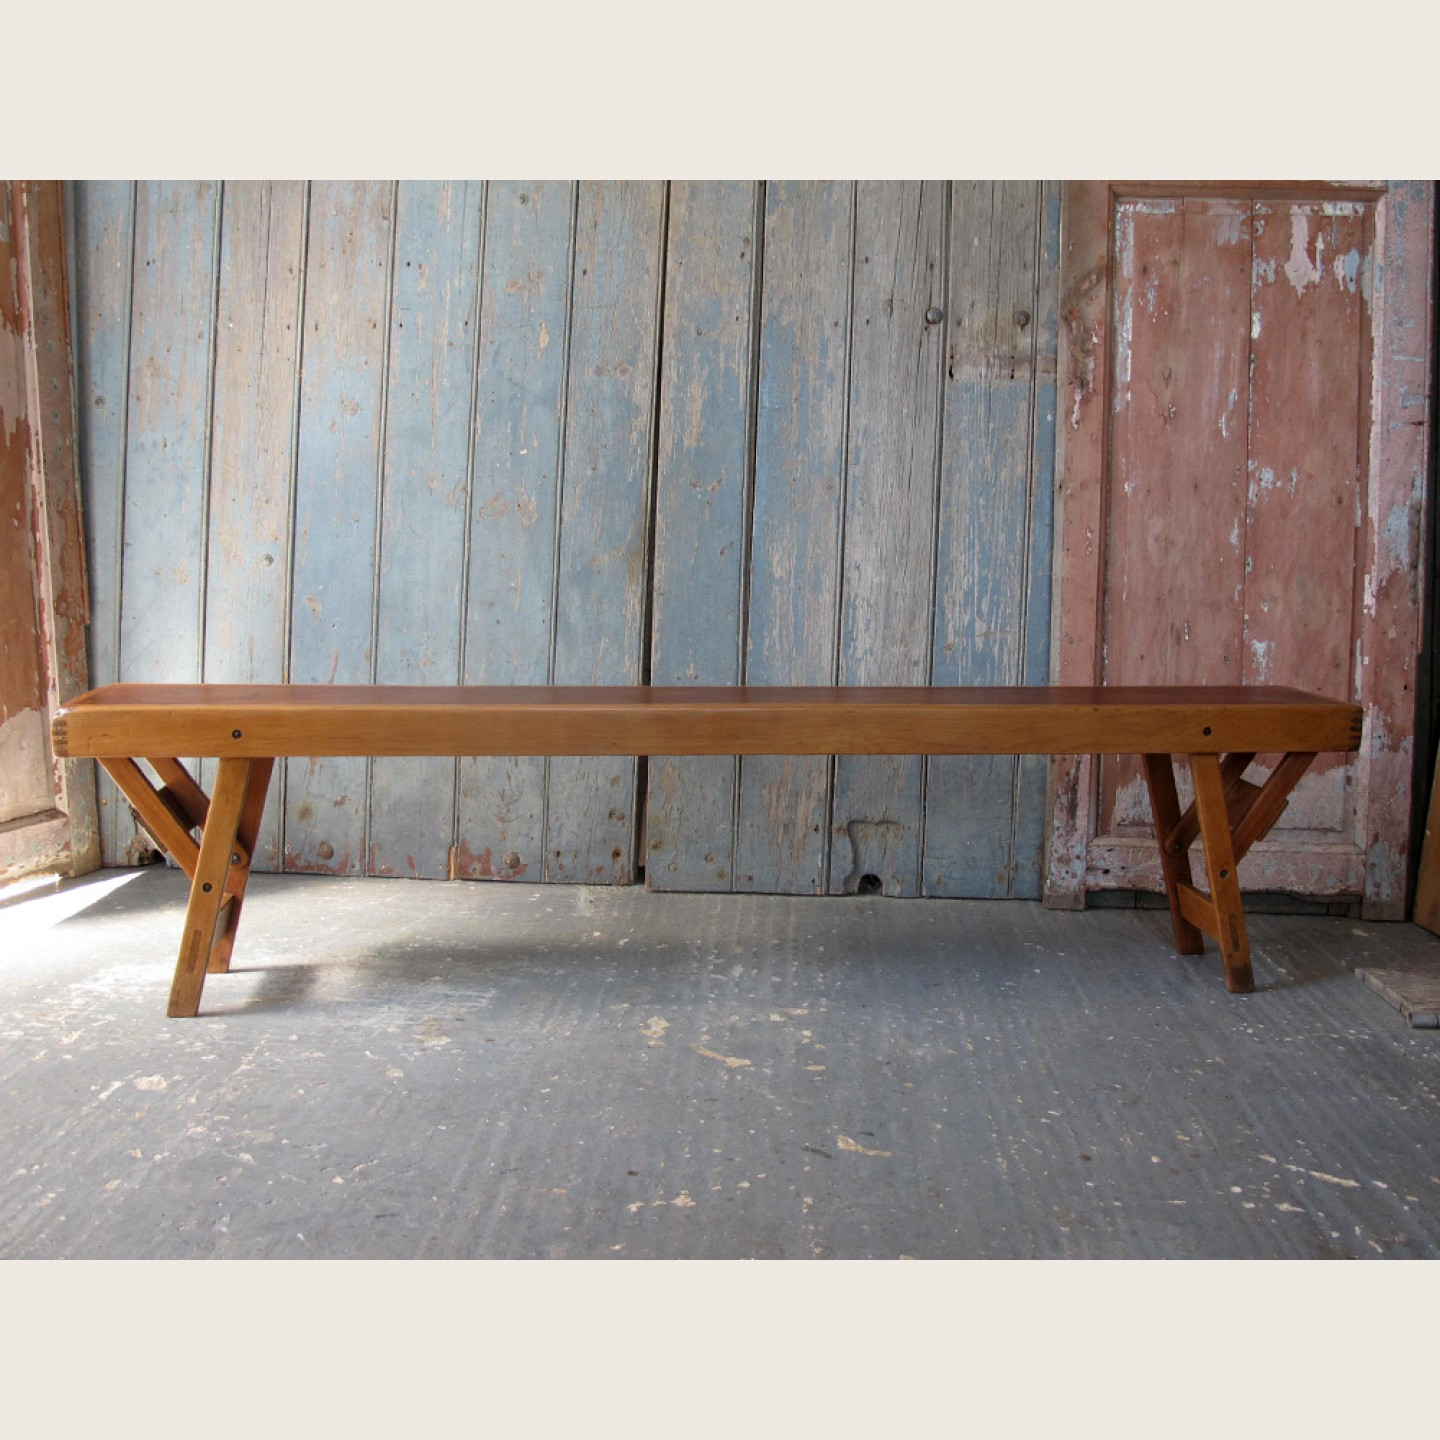 Image of: Vintage Wooden Bench Simple